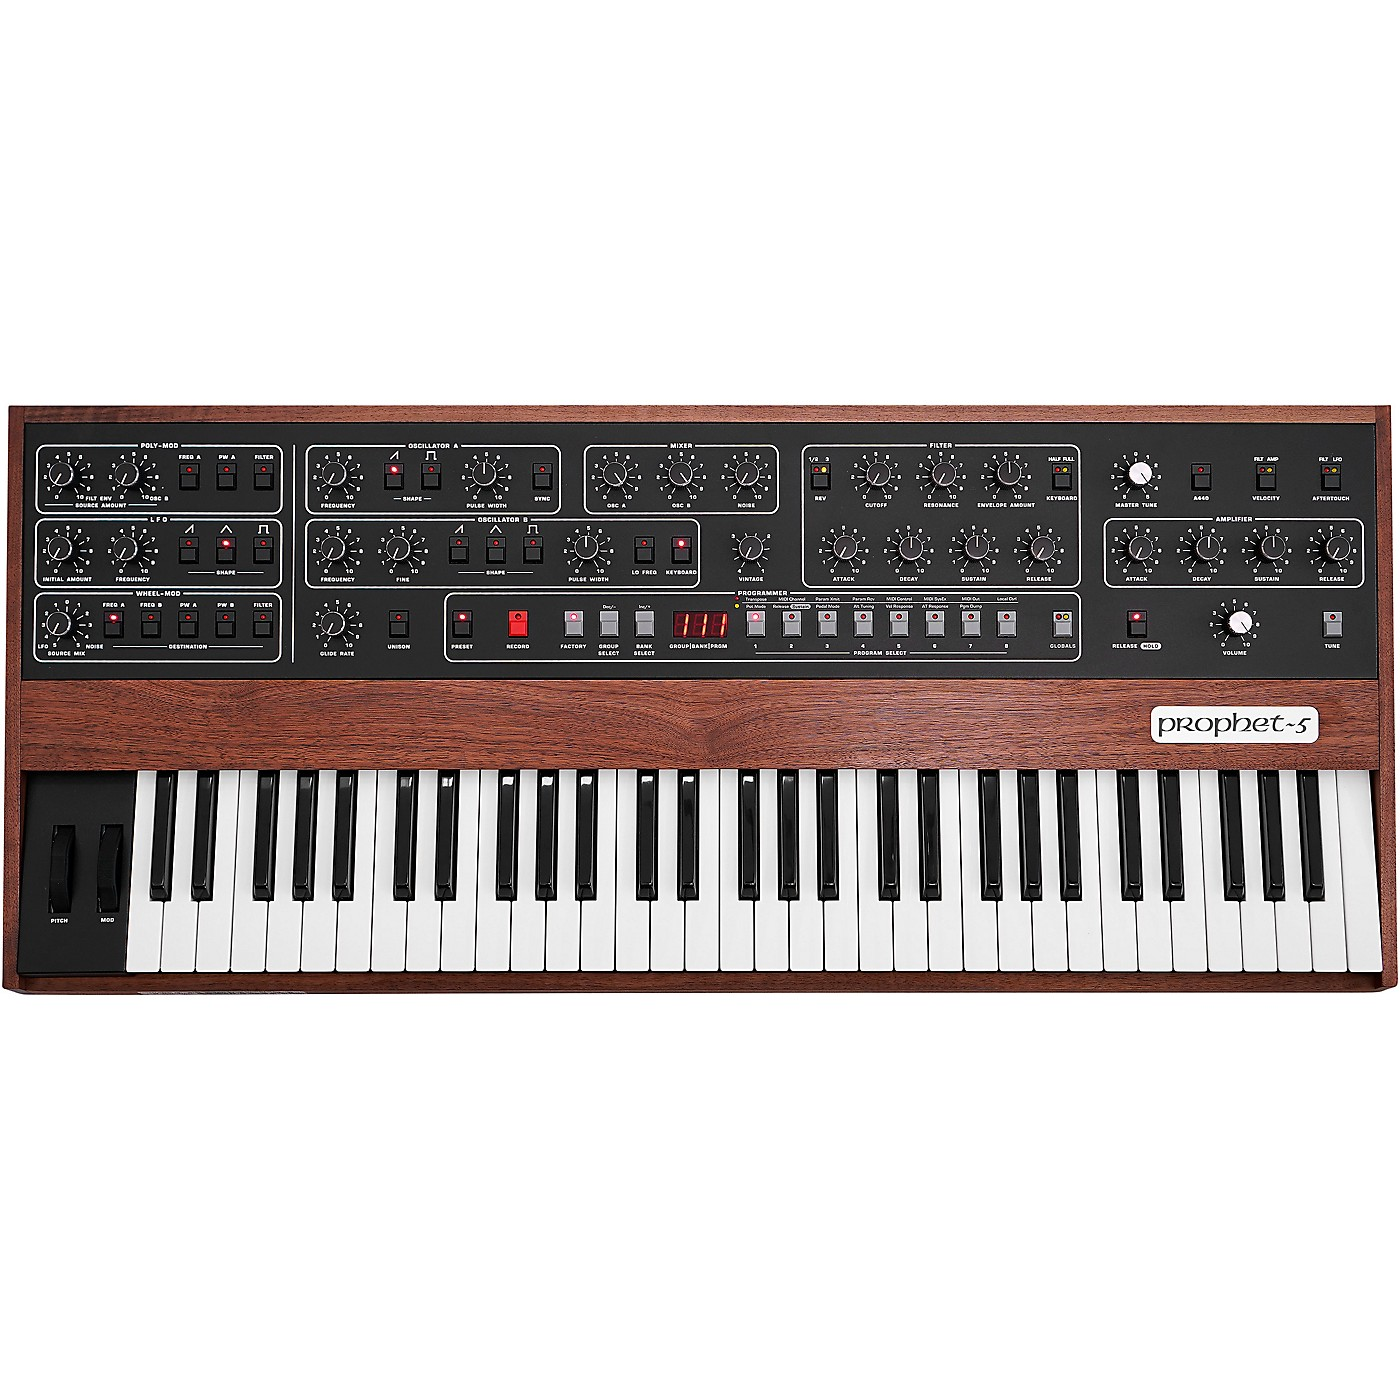 Sequential Prophet-5 5-Voice Polyphonic Analog Synthesizer thumbnail